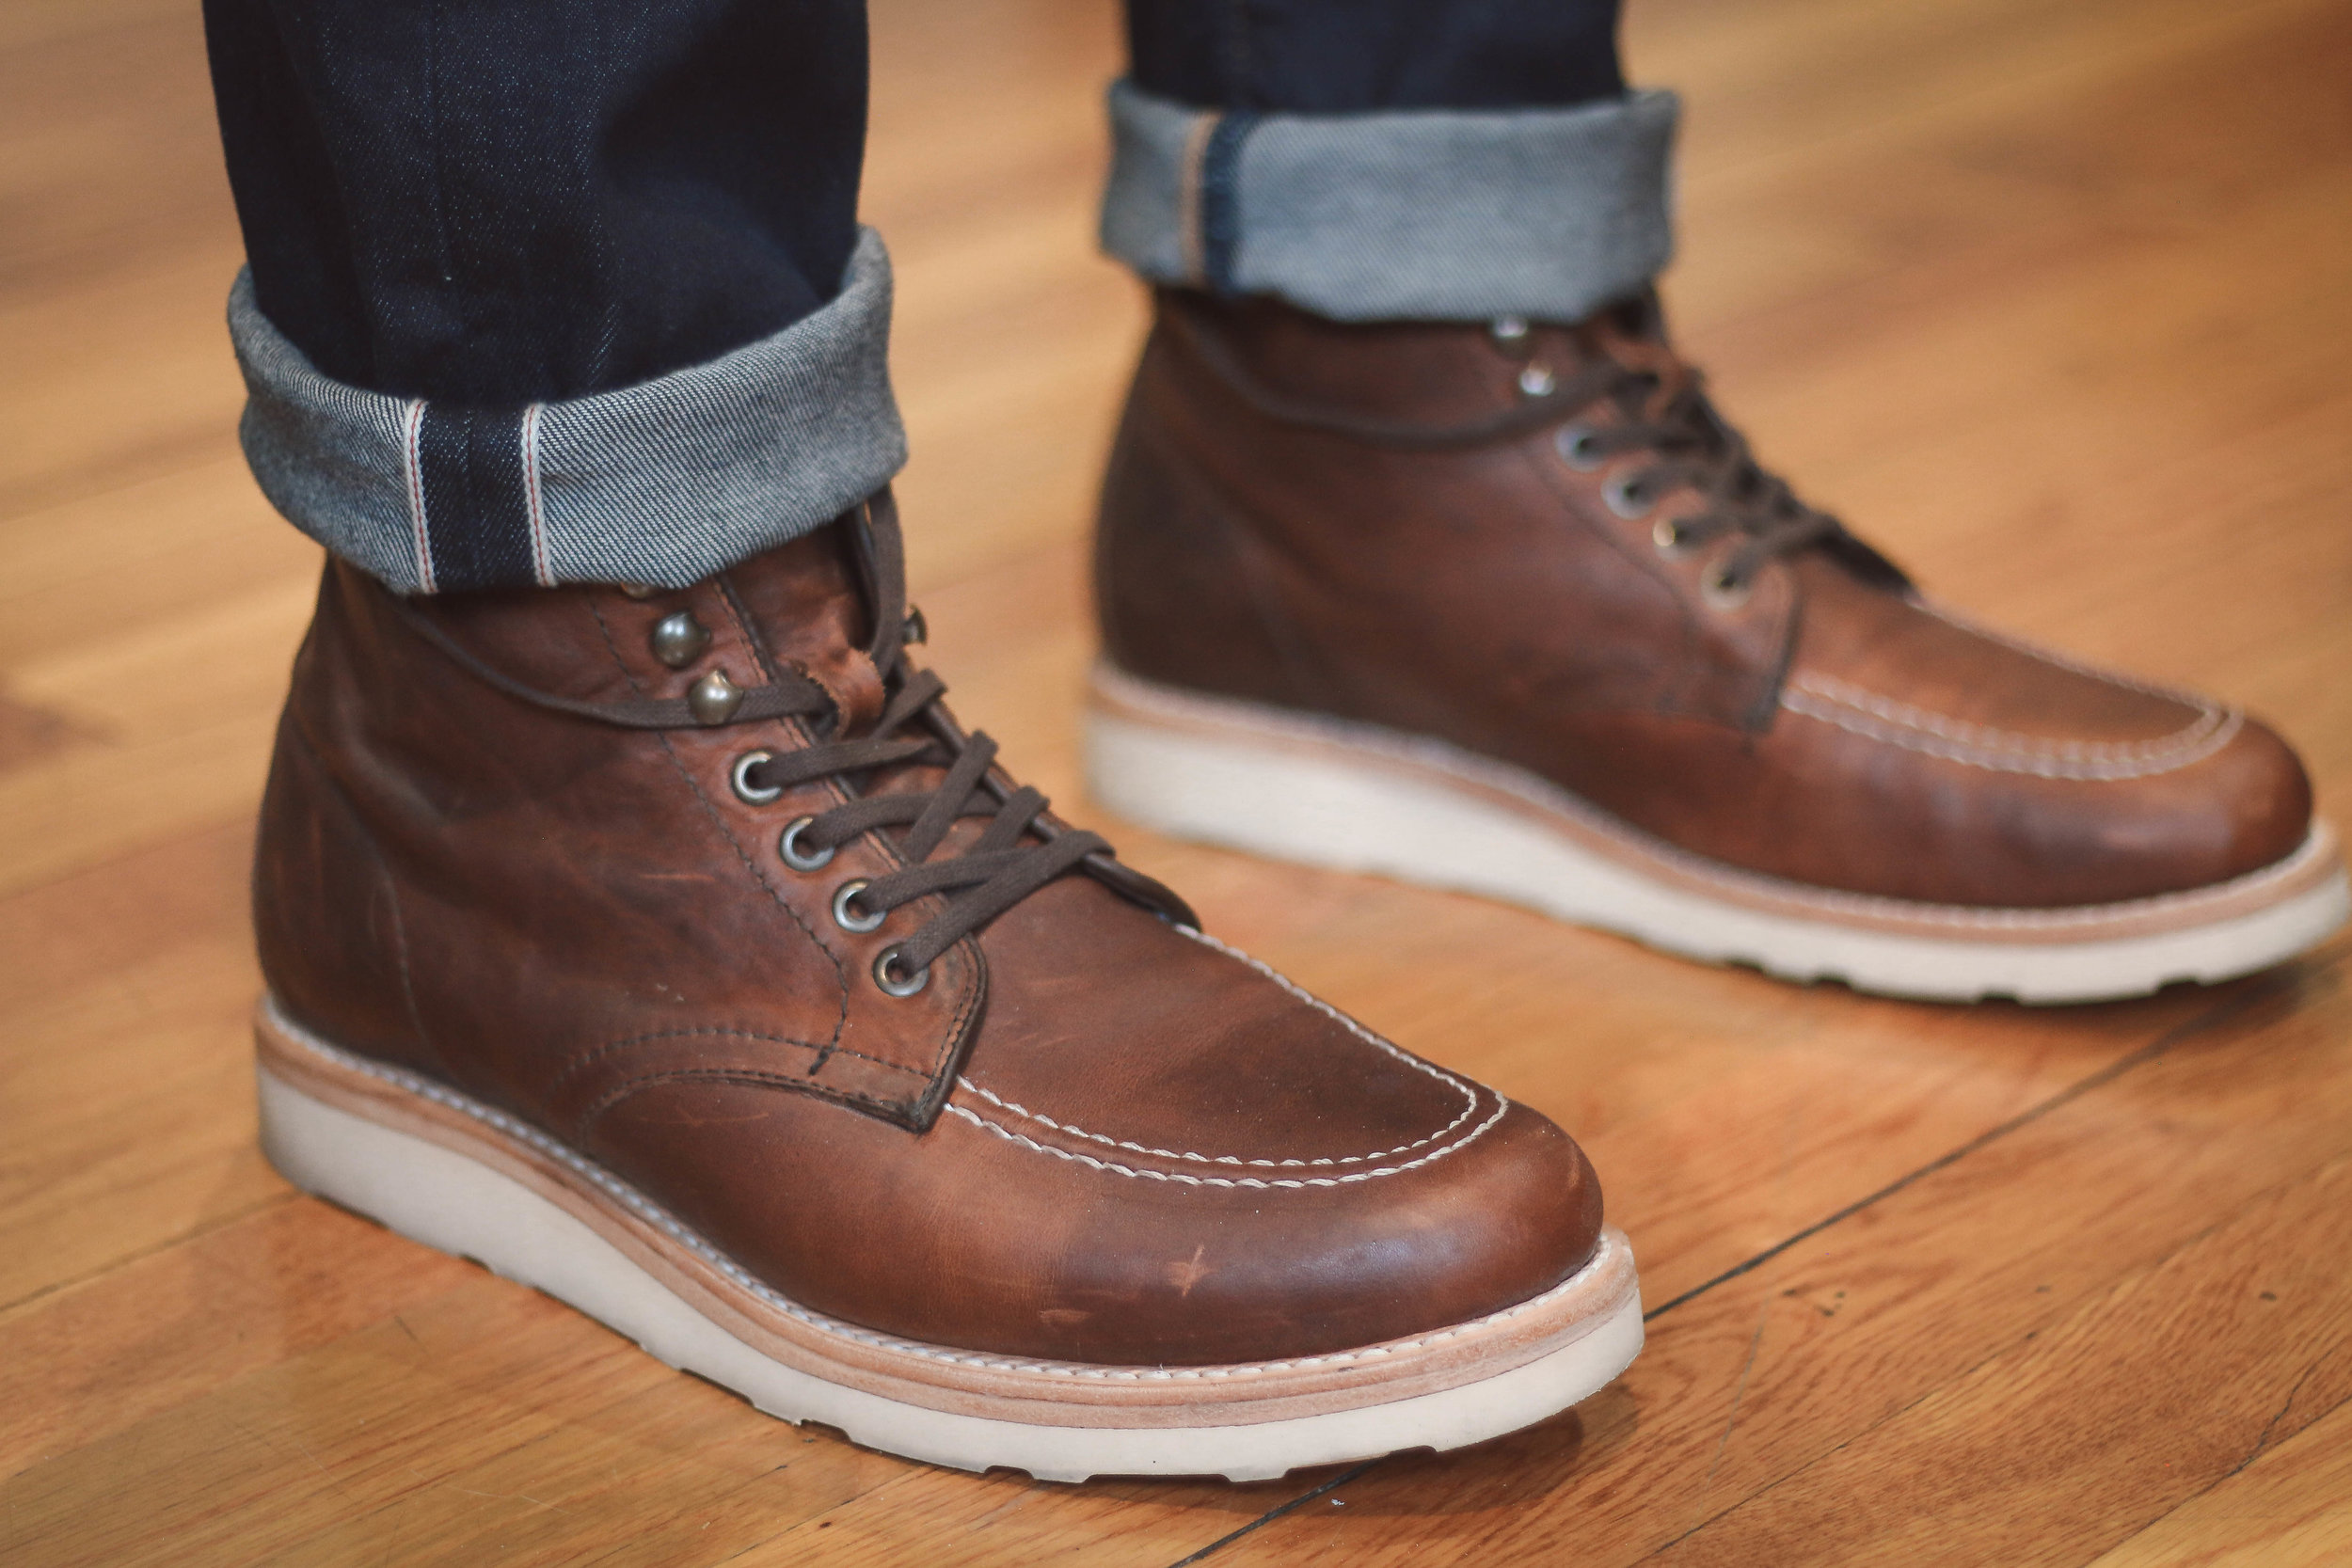 The Sutro Ellington is a much more affordable alternative to the Alden Indy boot coming in at $248 retail but frequently on sale. Another example of a handsome moc toe!